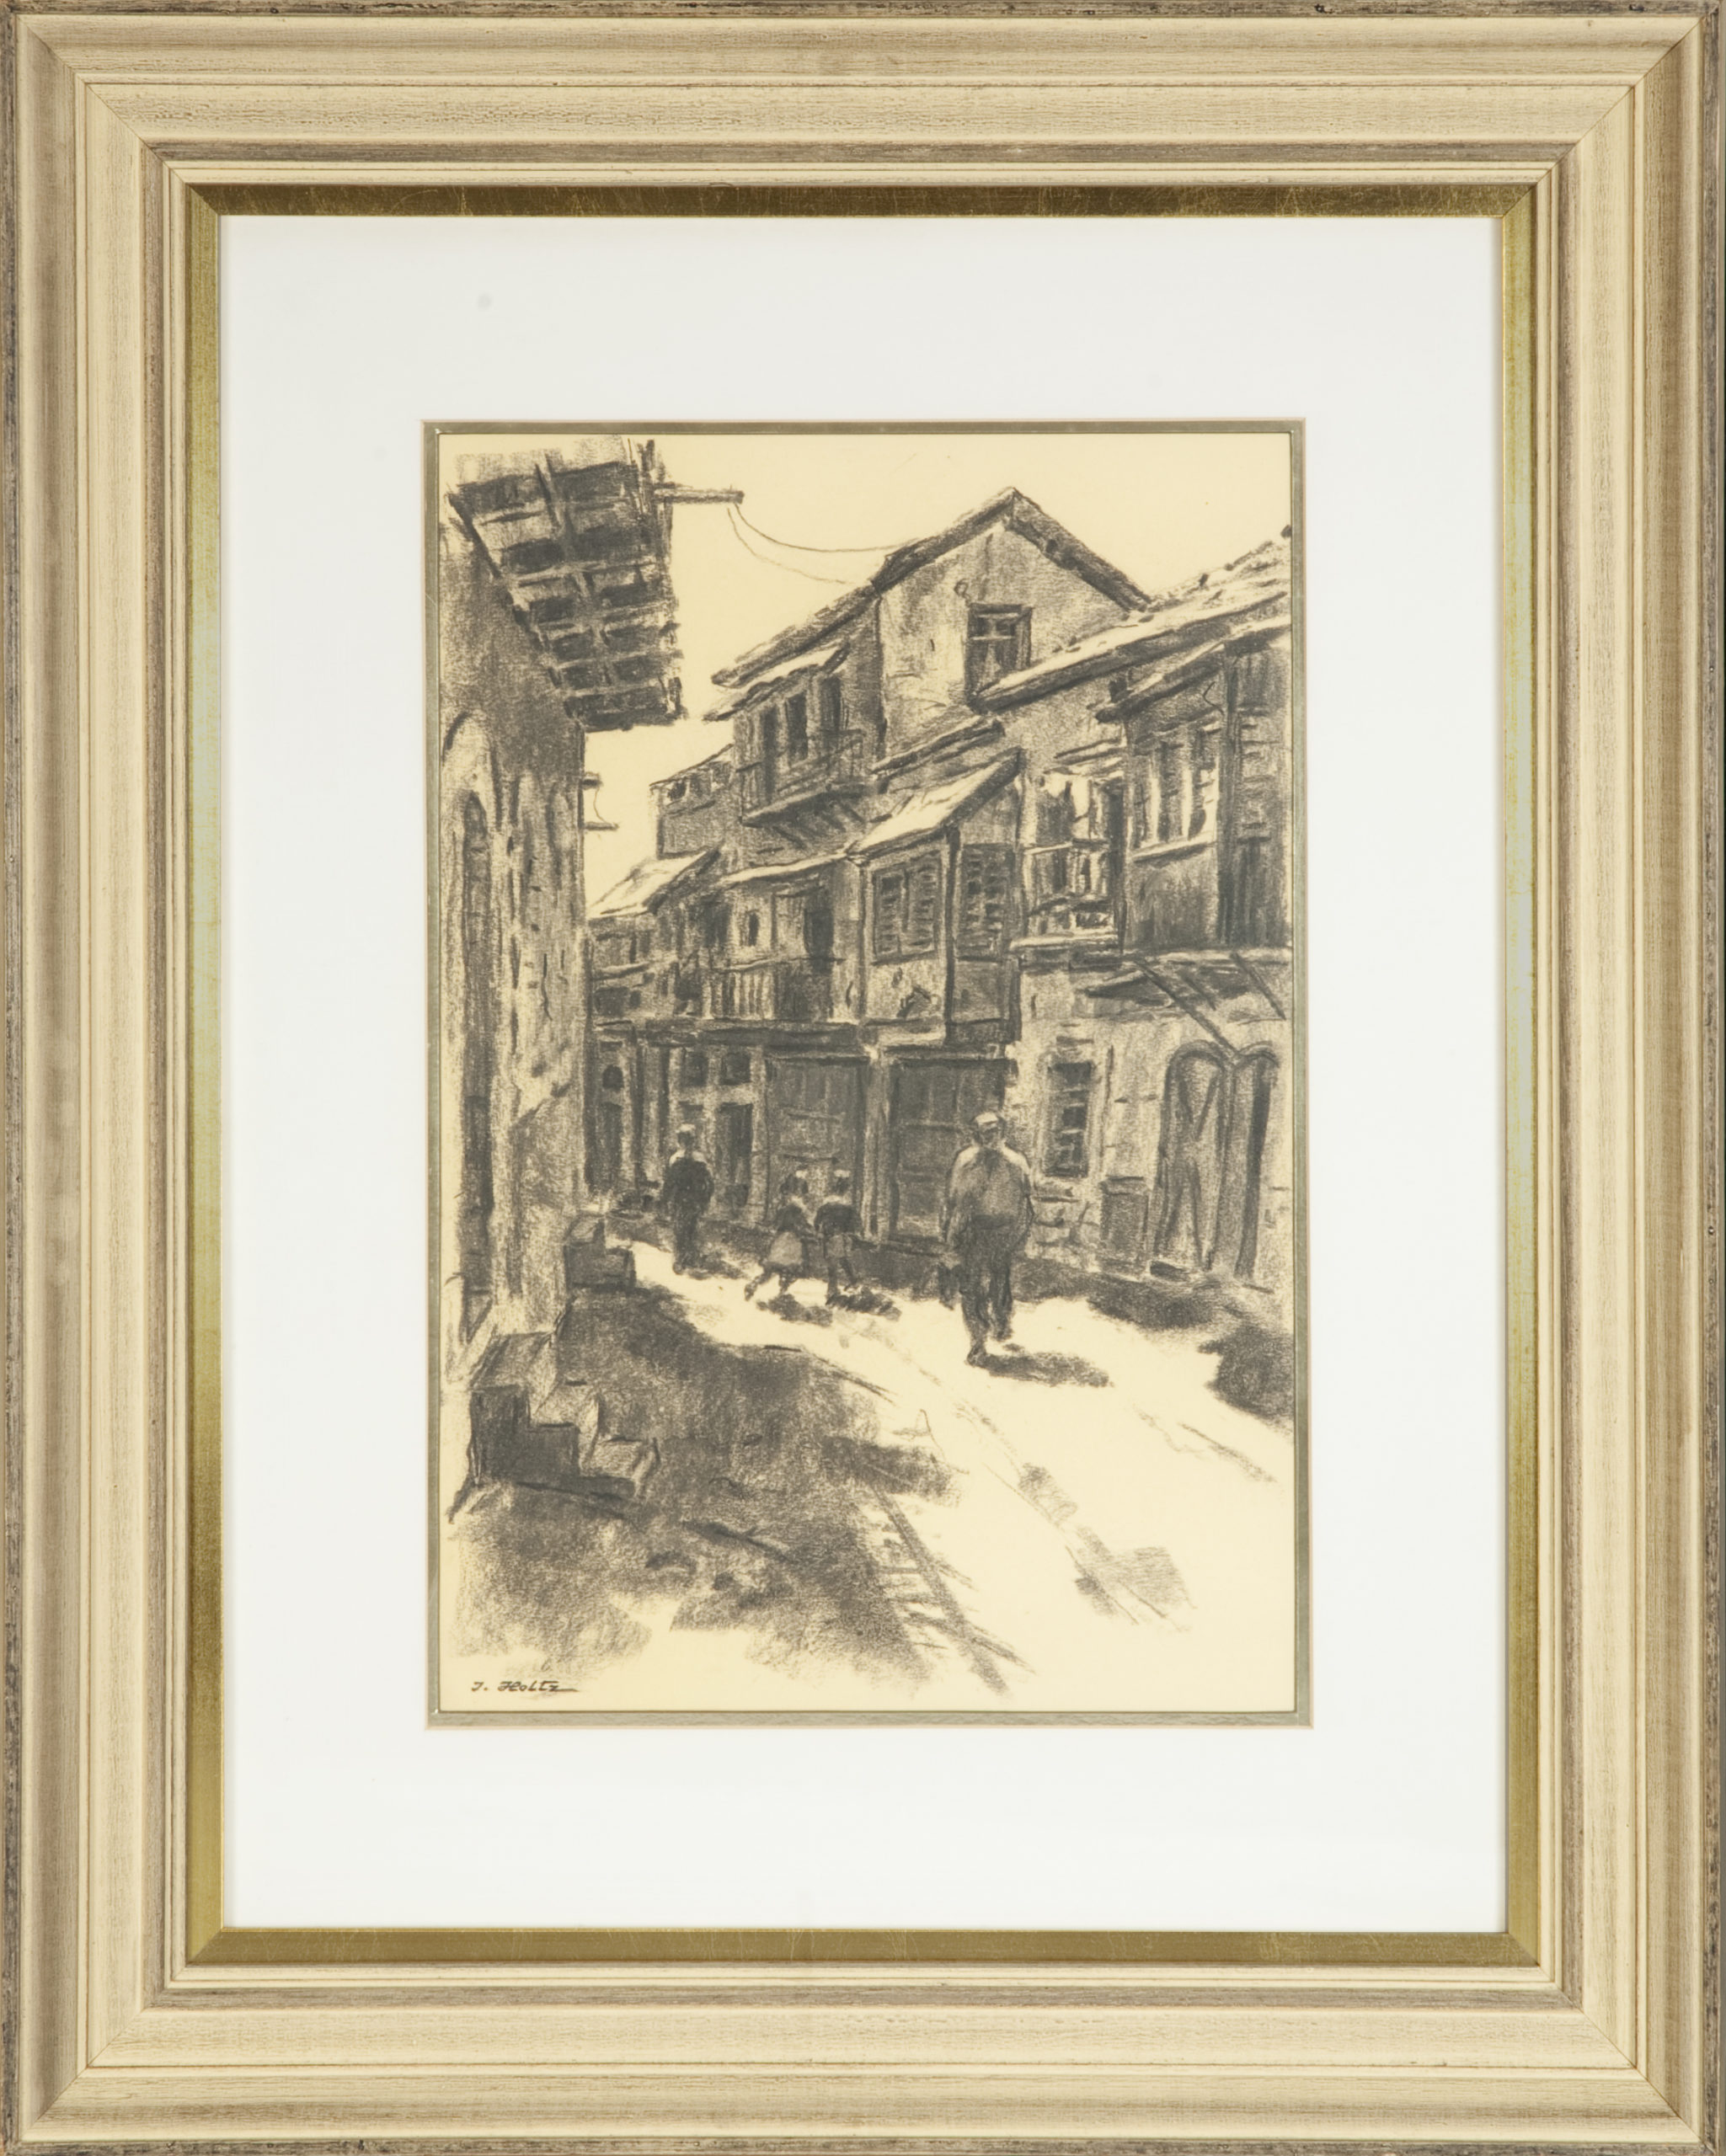 232 Jerusalem Alley 1959 - Charcoal - 12 x 18 - Frame: 23.5 x 29.25 x 2